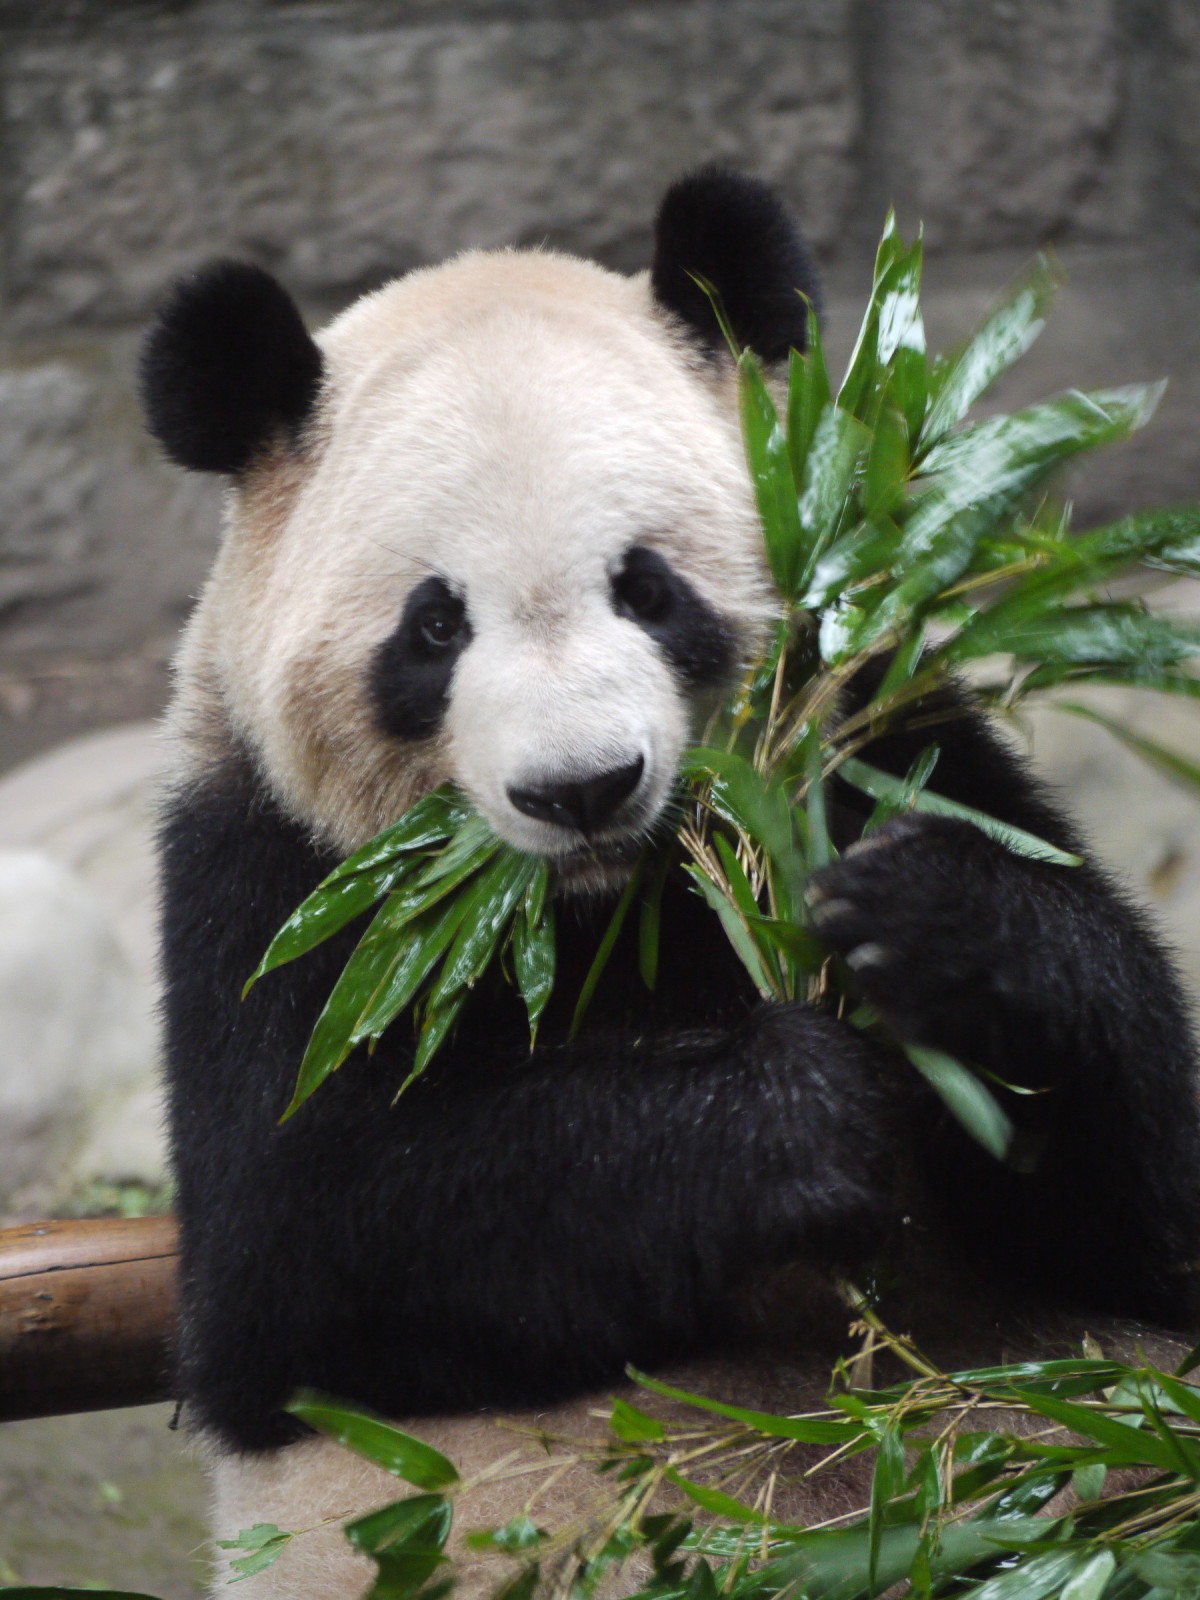 Little panda: a beautiful animal that is dying out 29